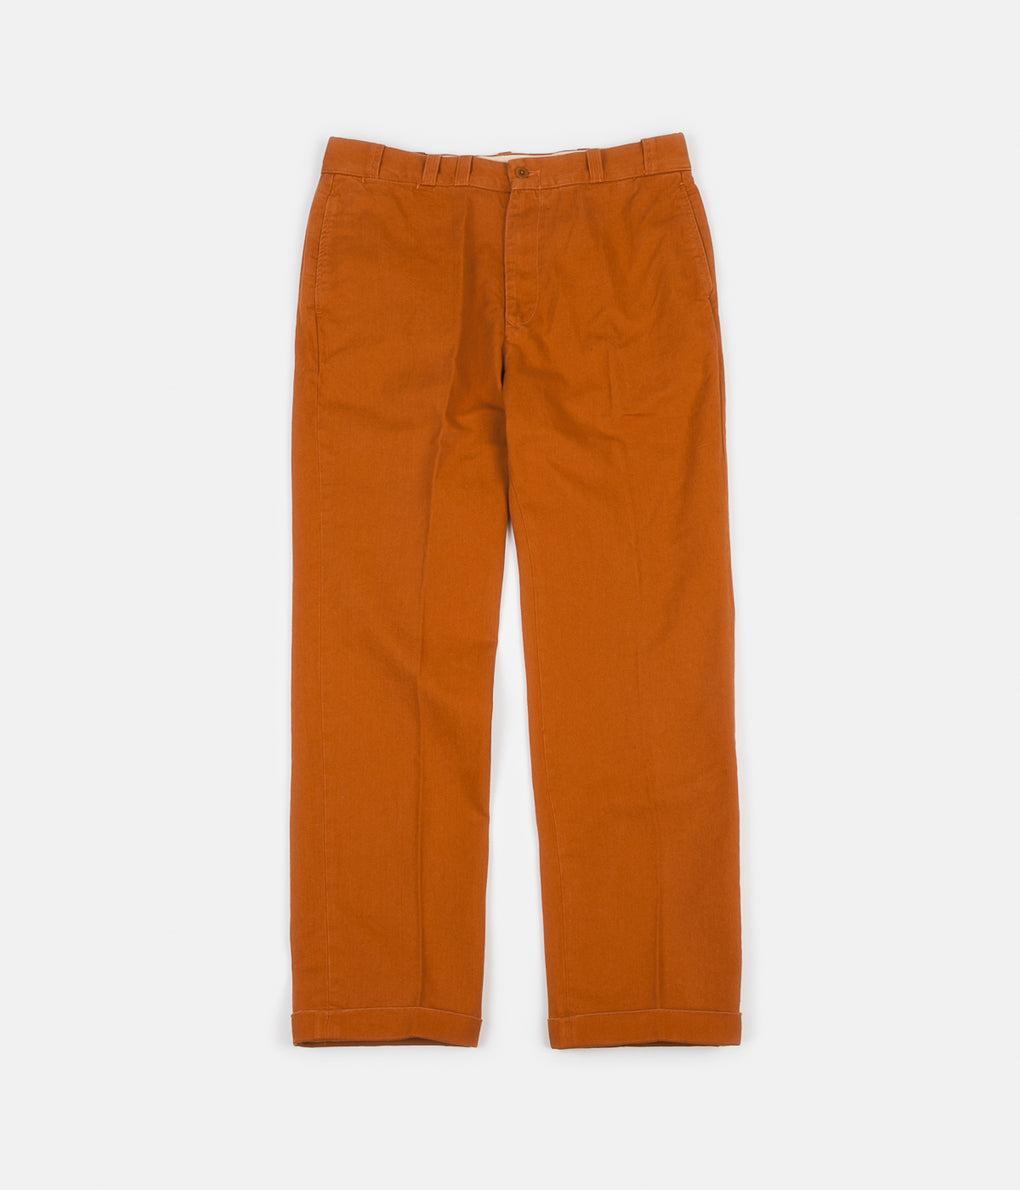 Levi's® Vintage Clothing Tab Twill Trousers - Autumnal